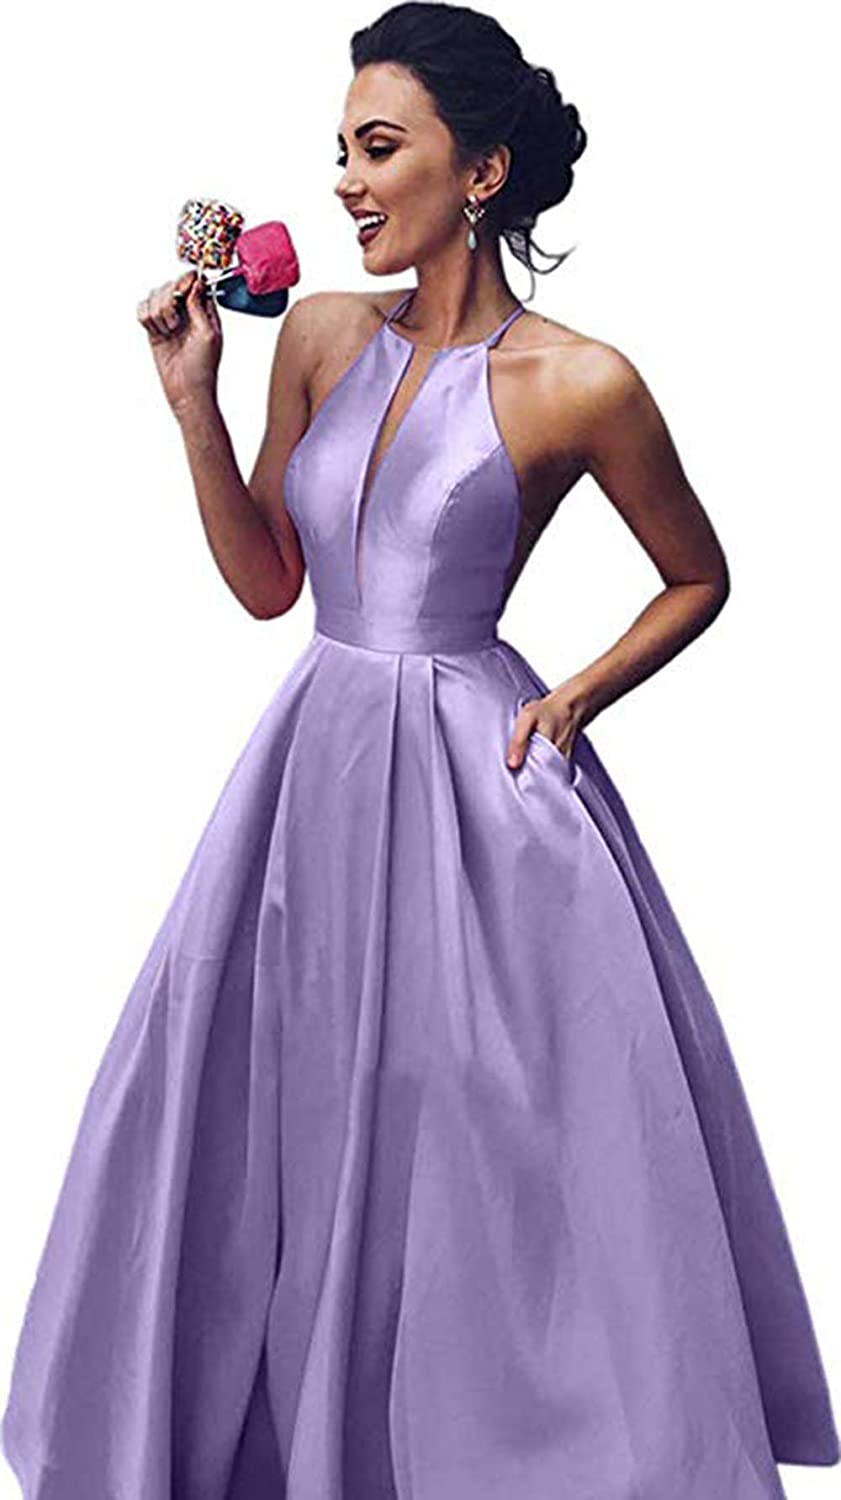 Lavender Rmaytiked Women's Halter Prom Dresses Long 2019 Satin A Line Formal Evening Ball Gowns with Pockets